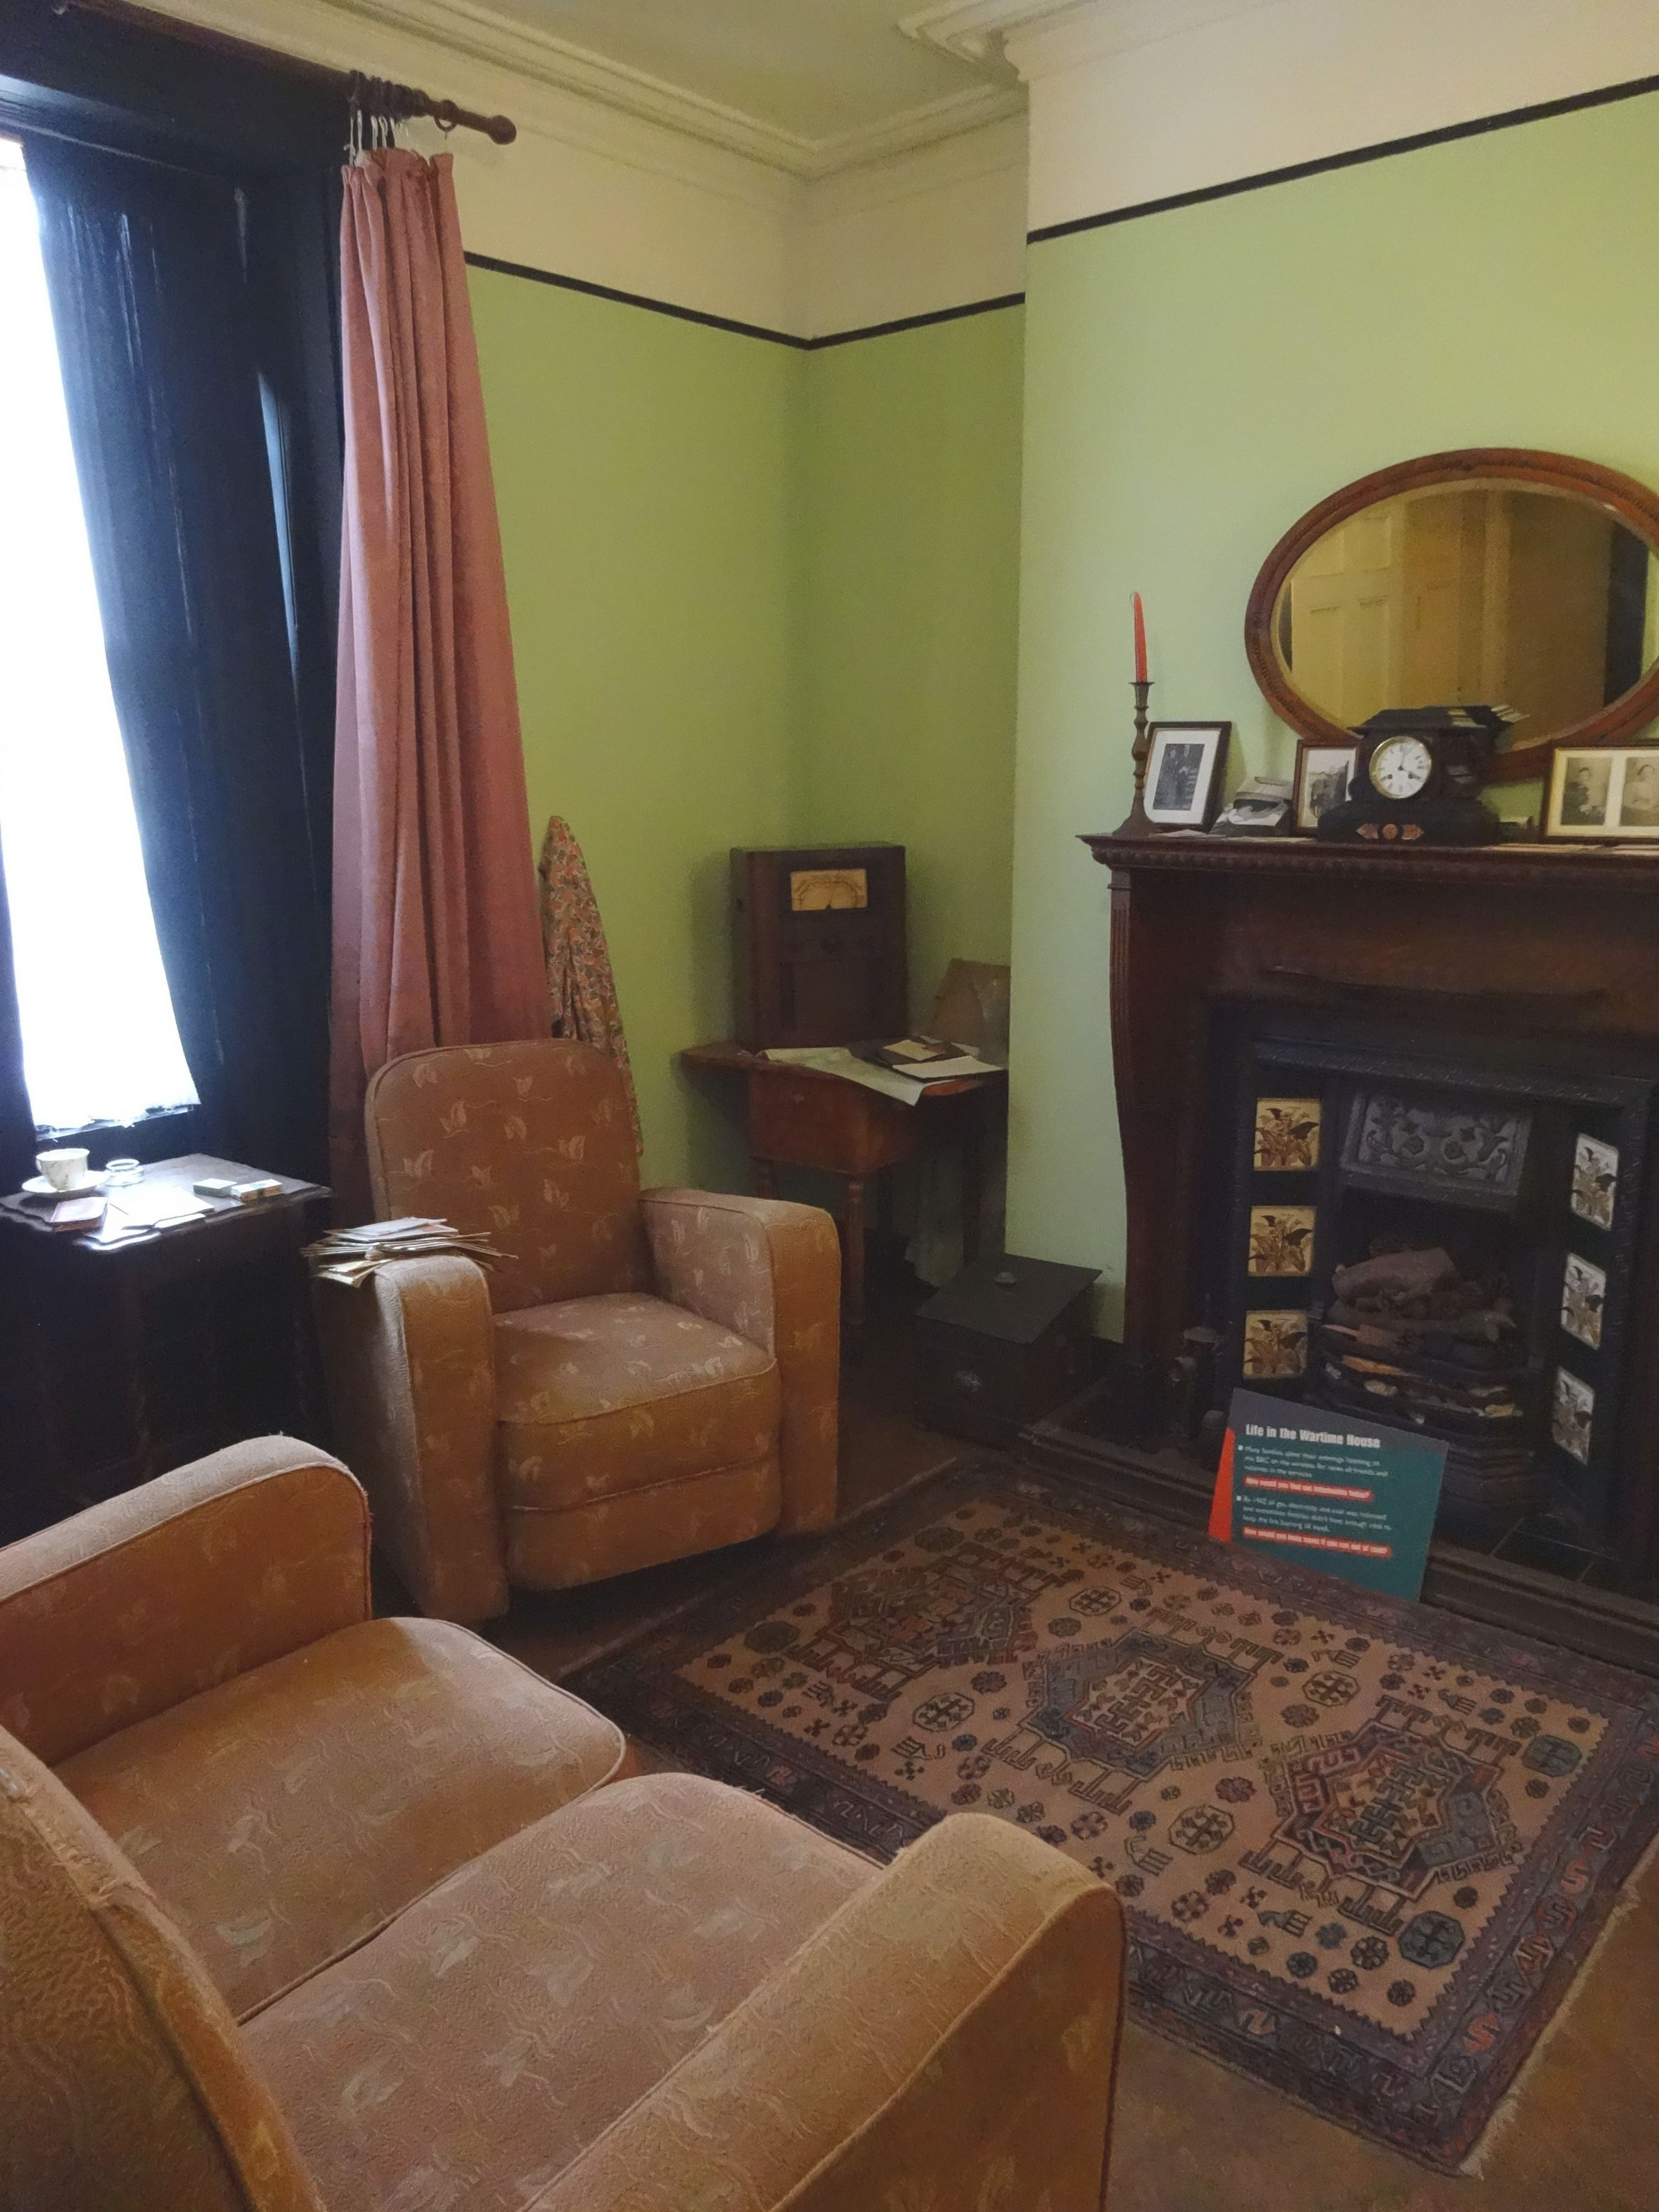 The Wartime House Living Room … | Green Living Room In 2019 pertaining to 1940 Living Room Decor